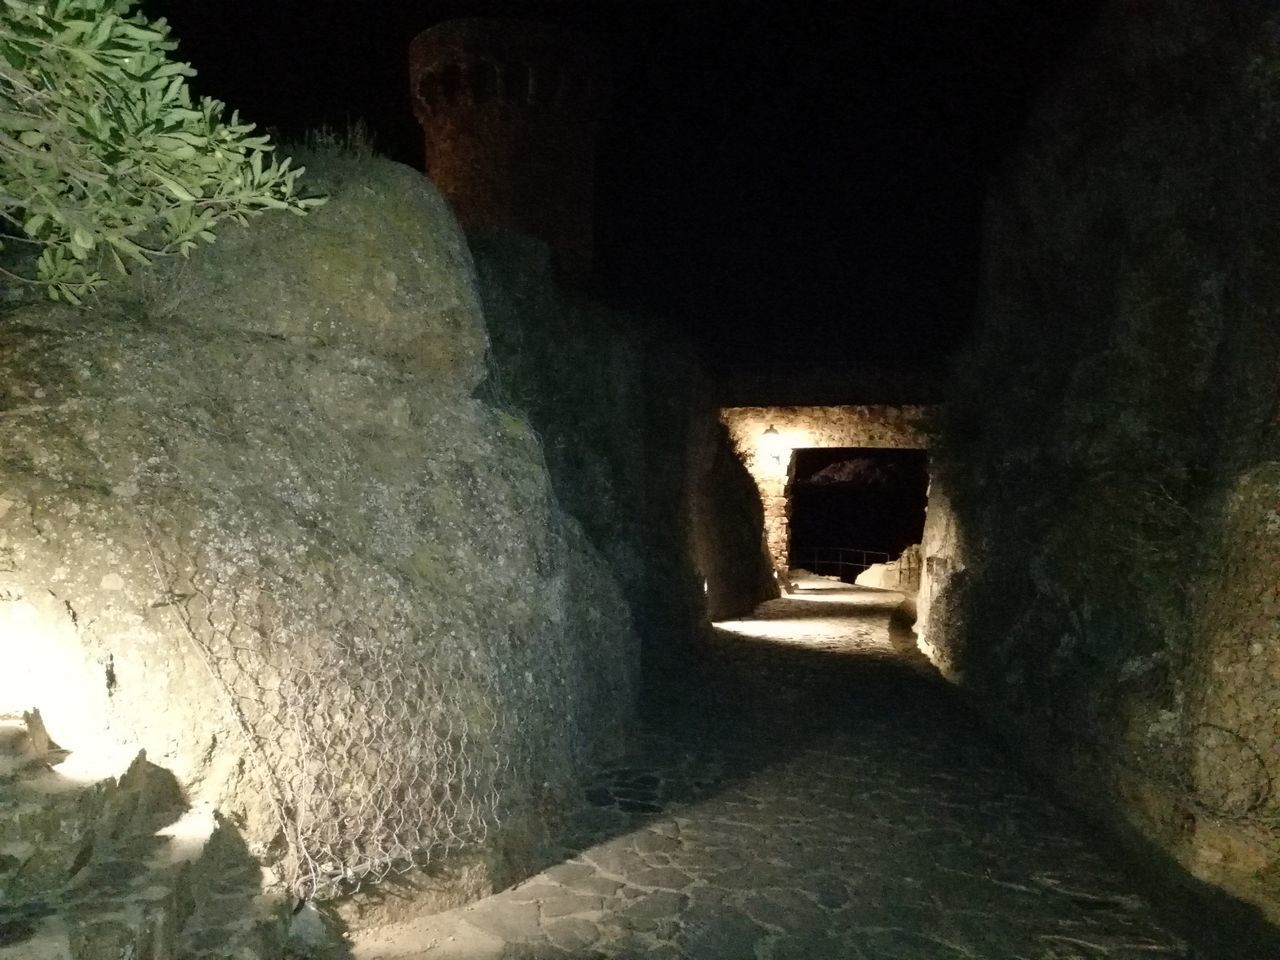 architecture, built structure, the way forward, direction, the past, history, no people, wall, building, nature, indoors, old, night, tunnel, solid, illuminated, absence, arch, rock, stone wall, ancient civilization, alley